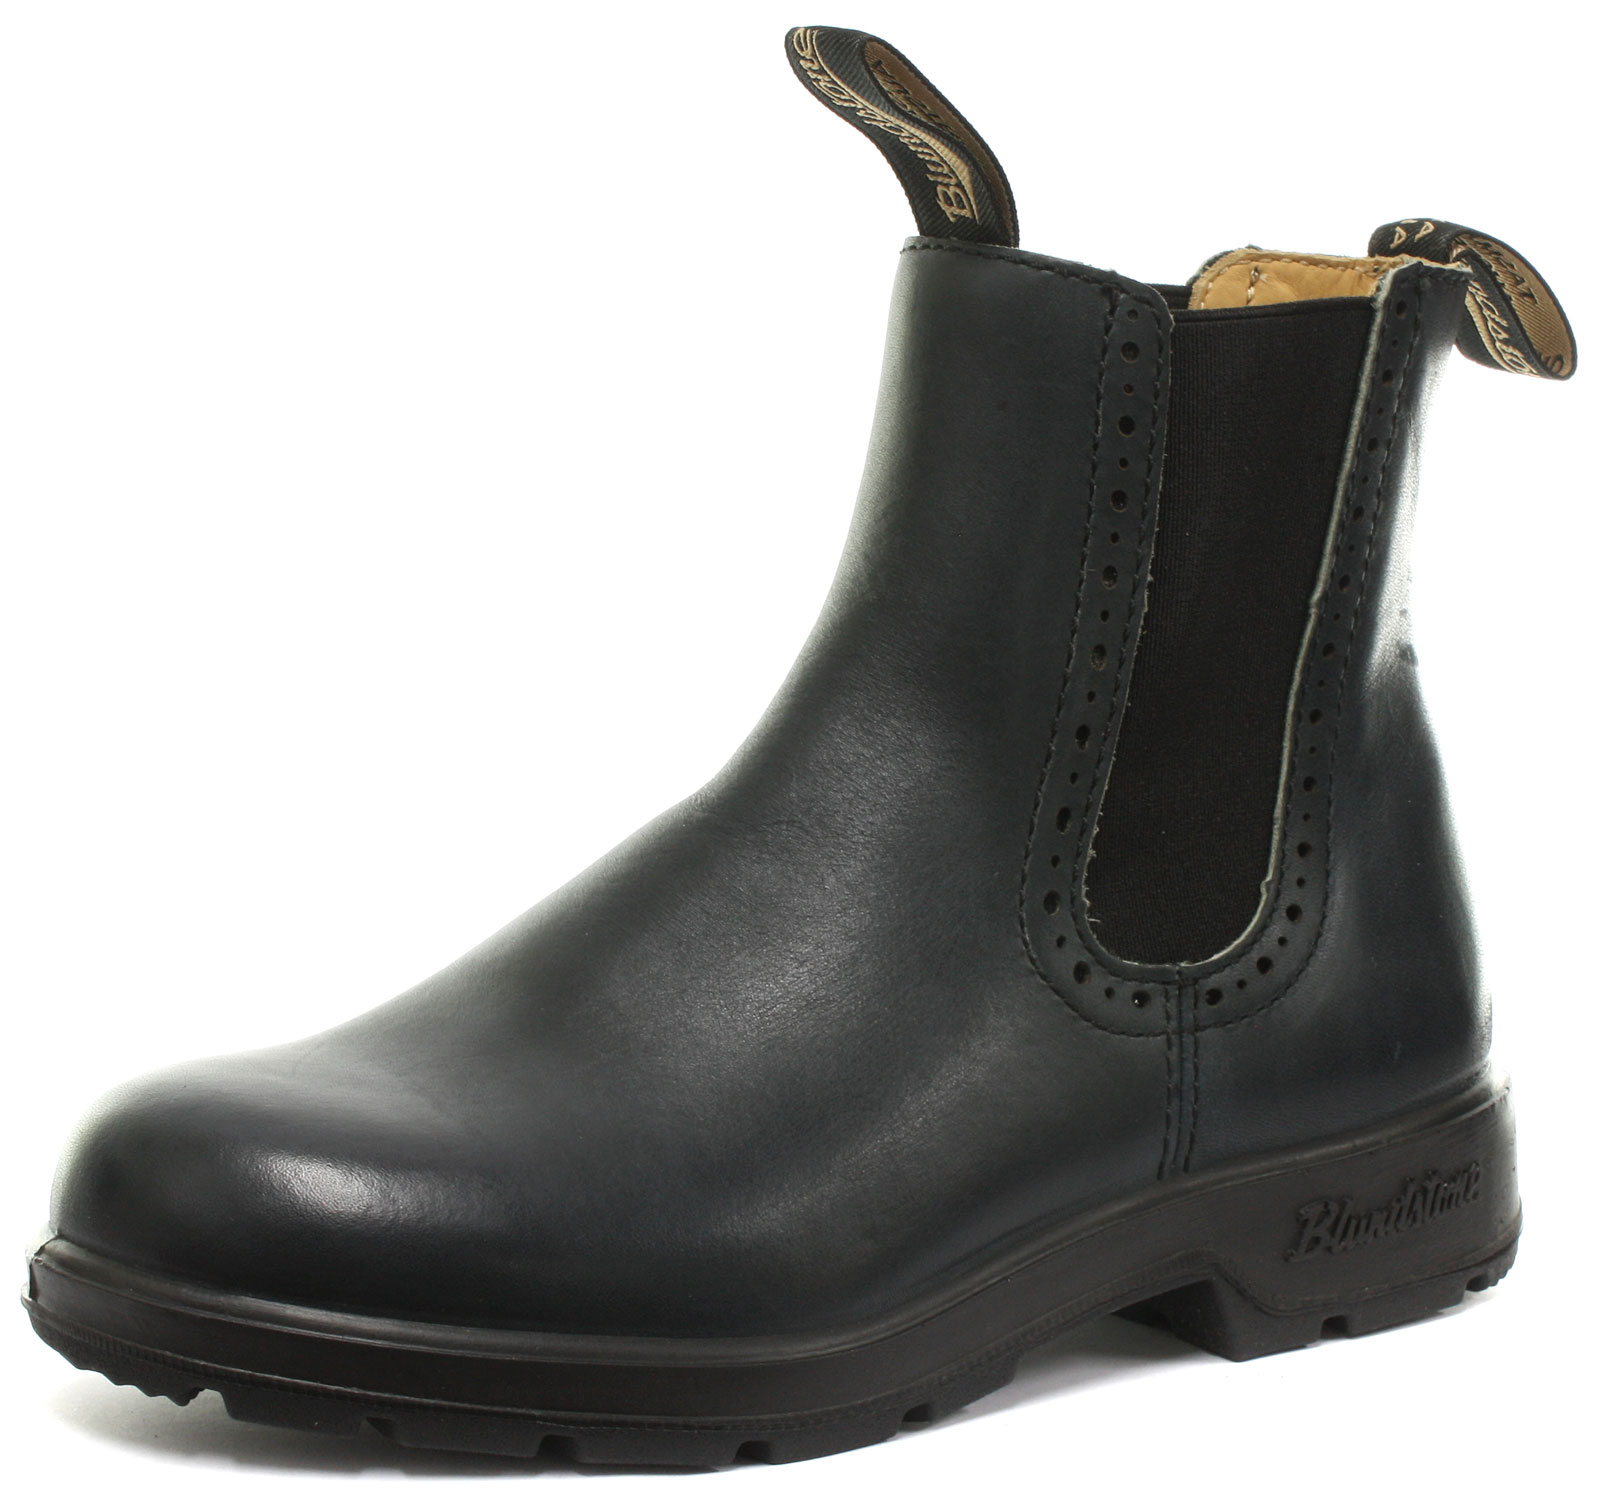 Popular Home  Men39s Shoes  Men39s Boots  Blundstone  Blundstone 585